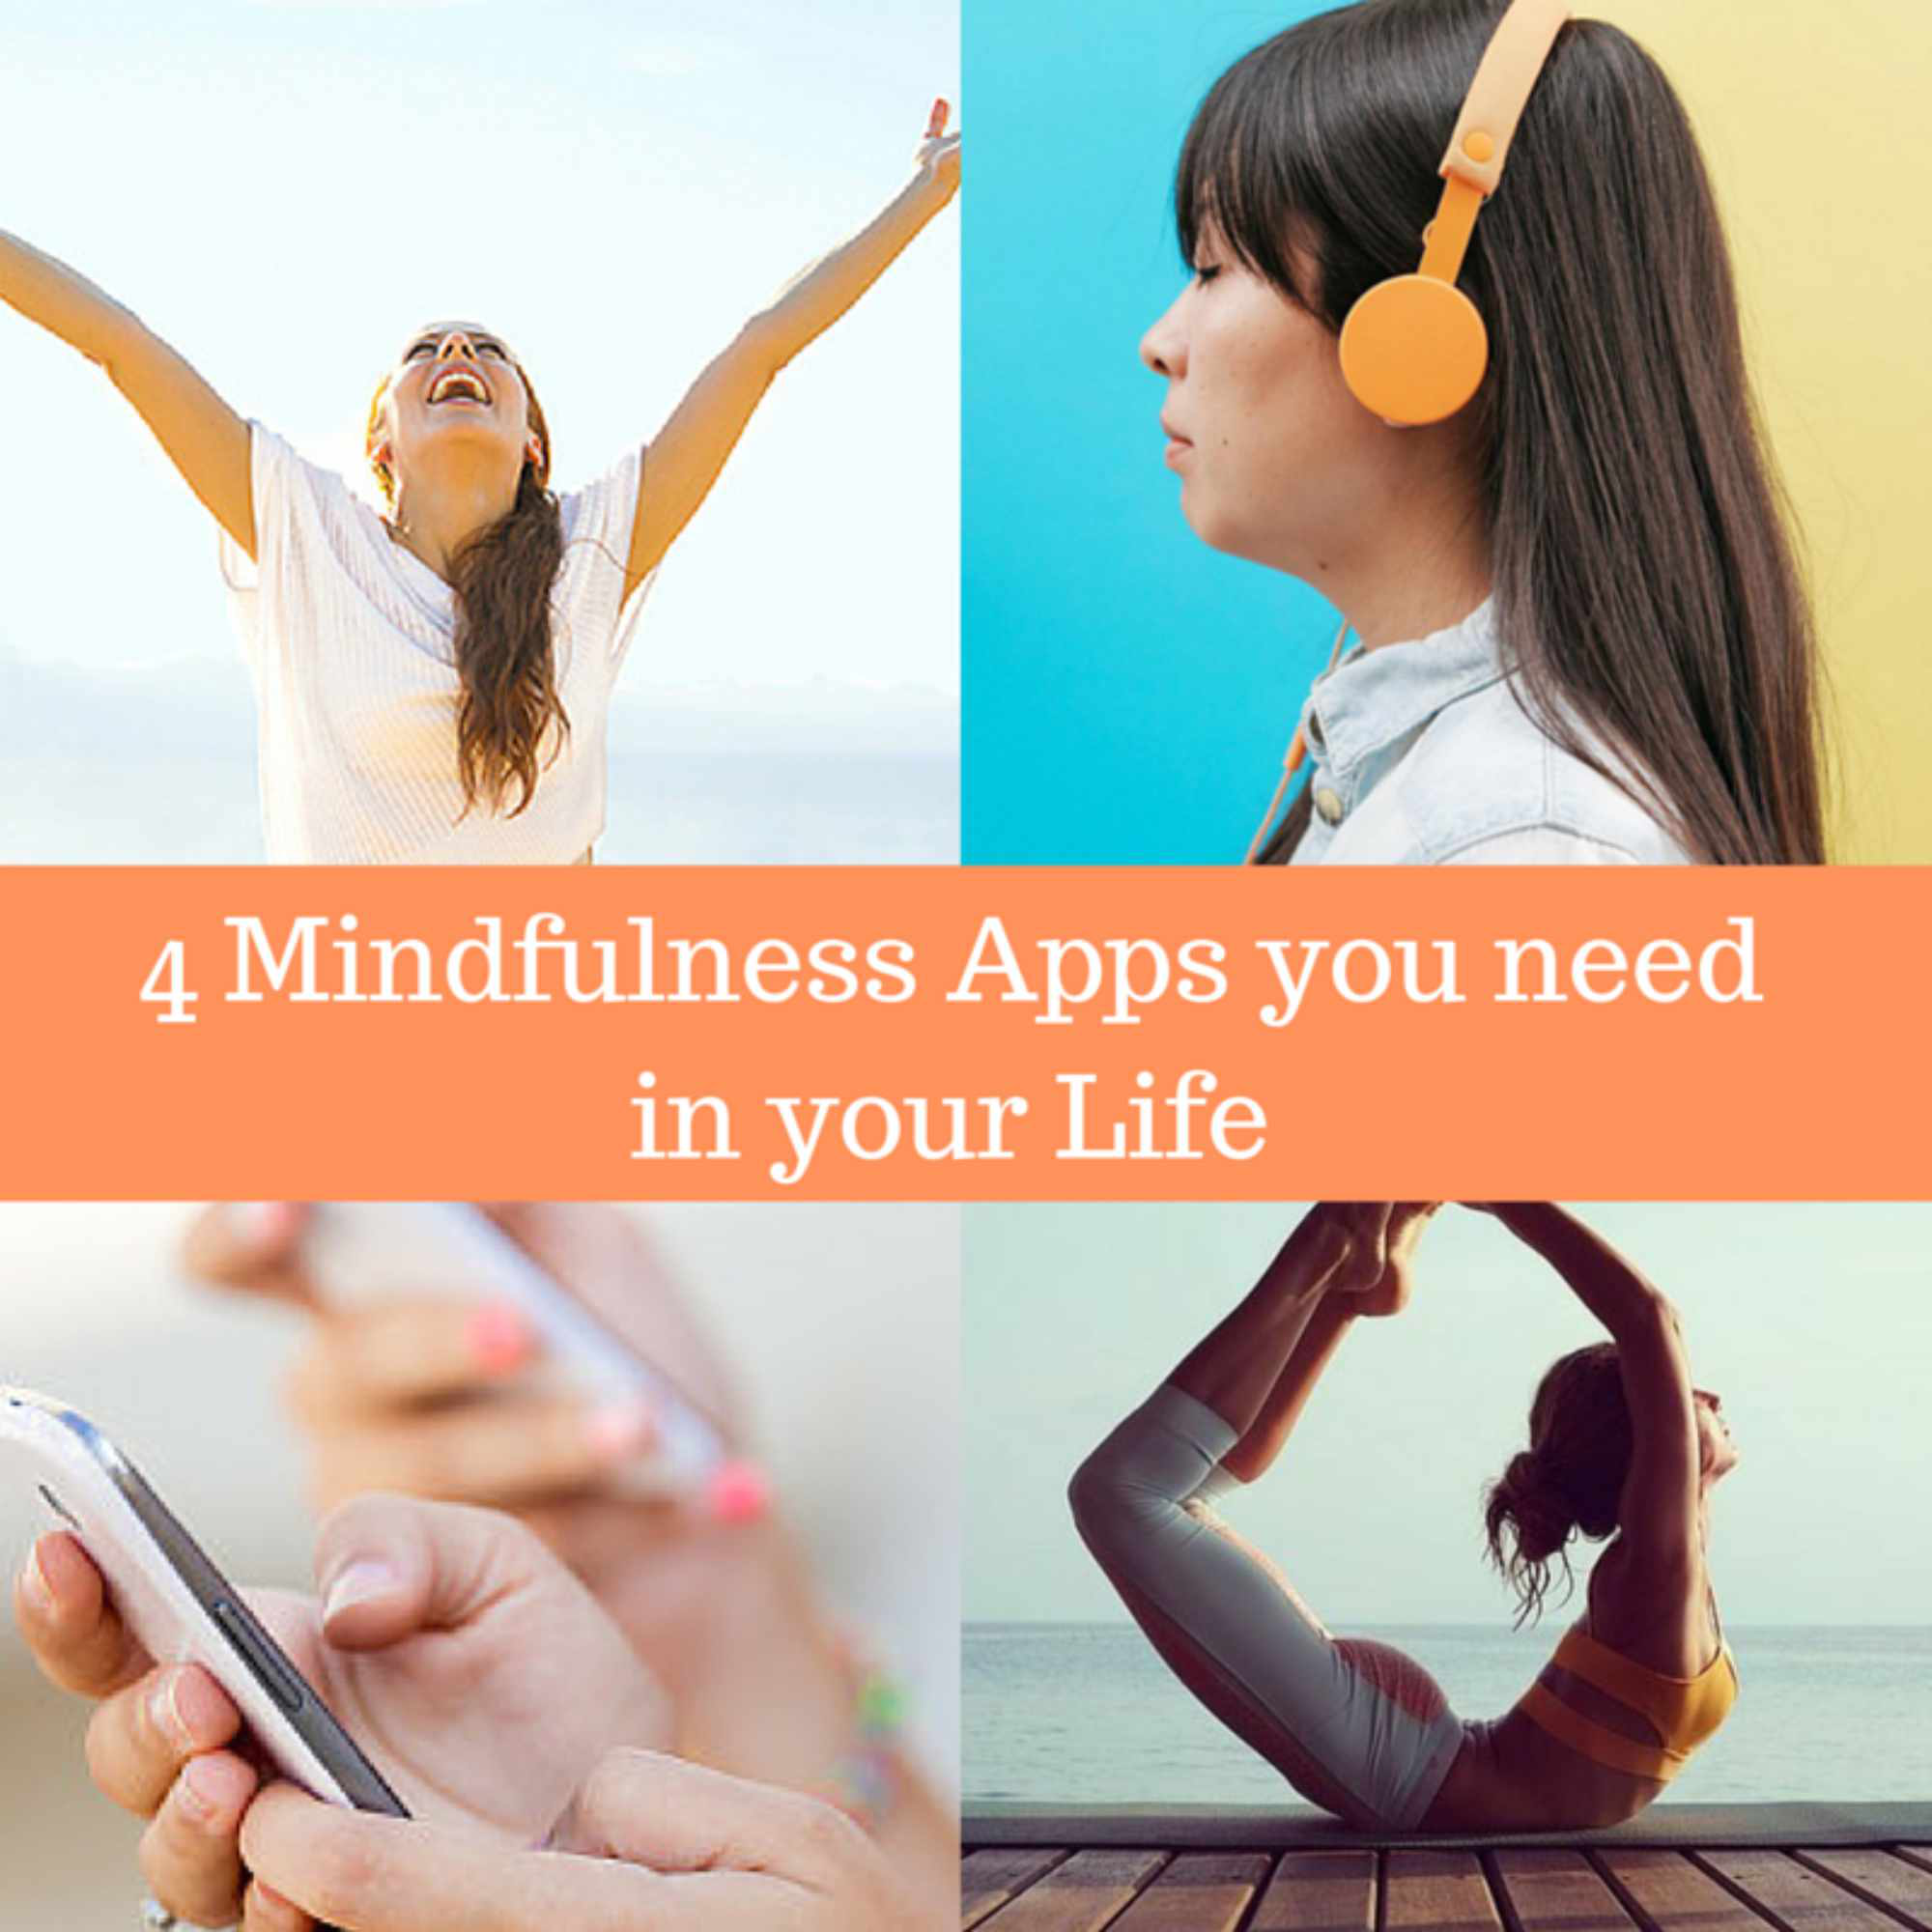 4 Mindfulness Apps you need in your Life